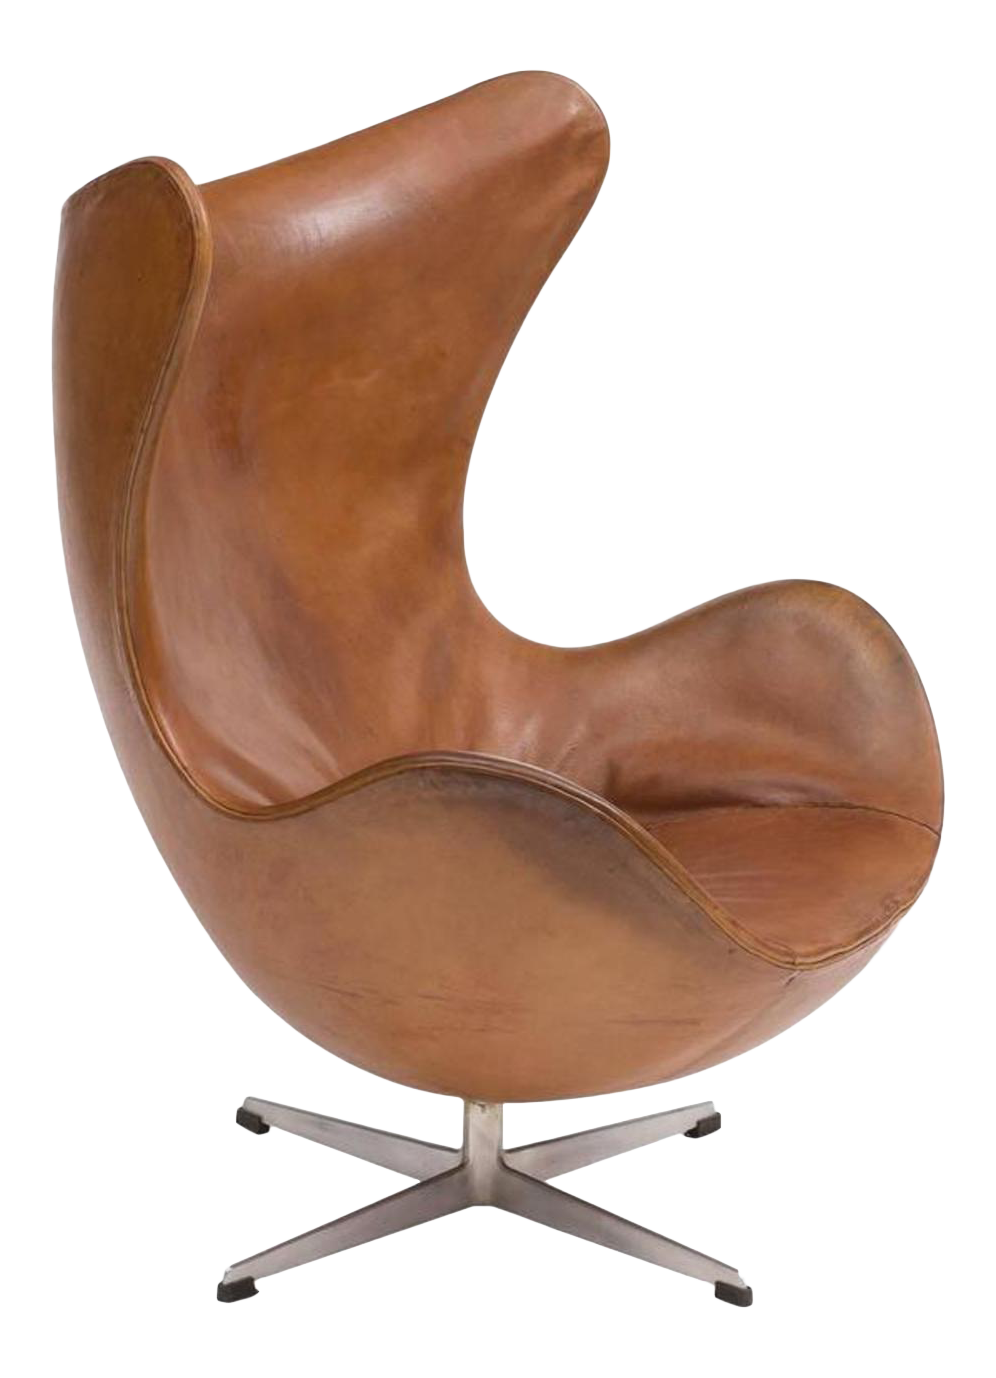 First Edition Egg Chair By Arne Jacobsen, Denmark, 1959 For Sale